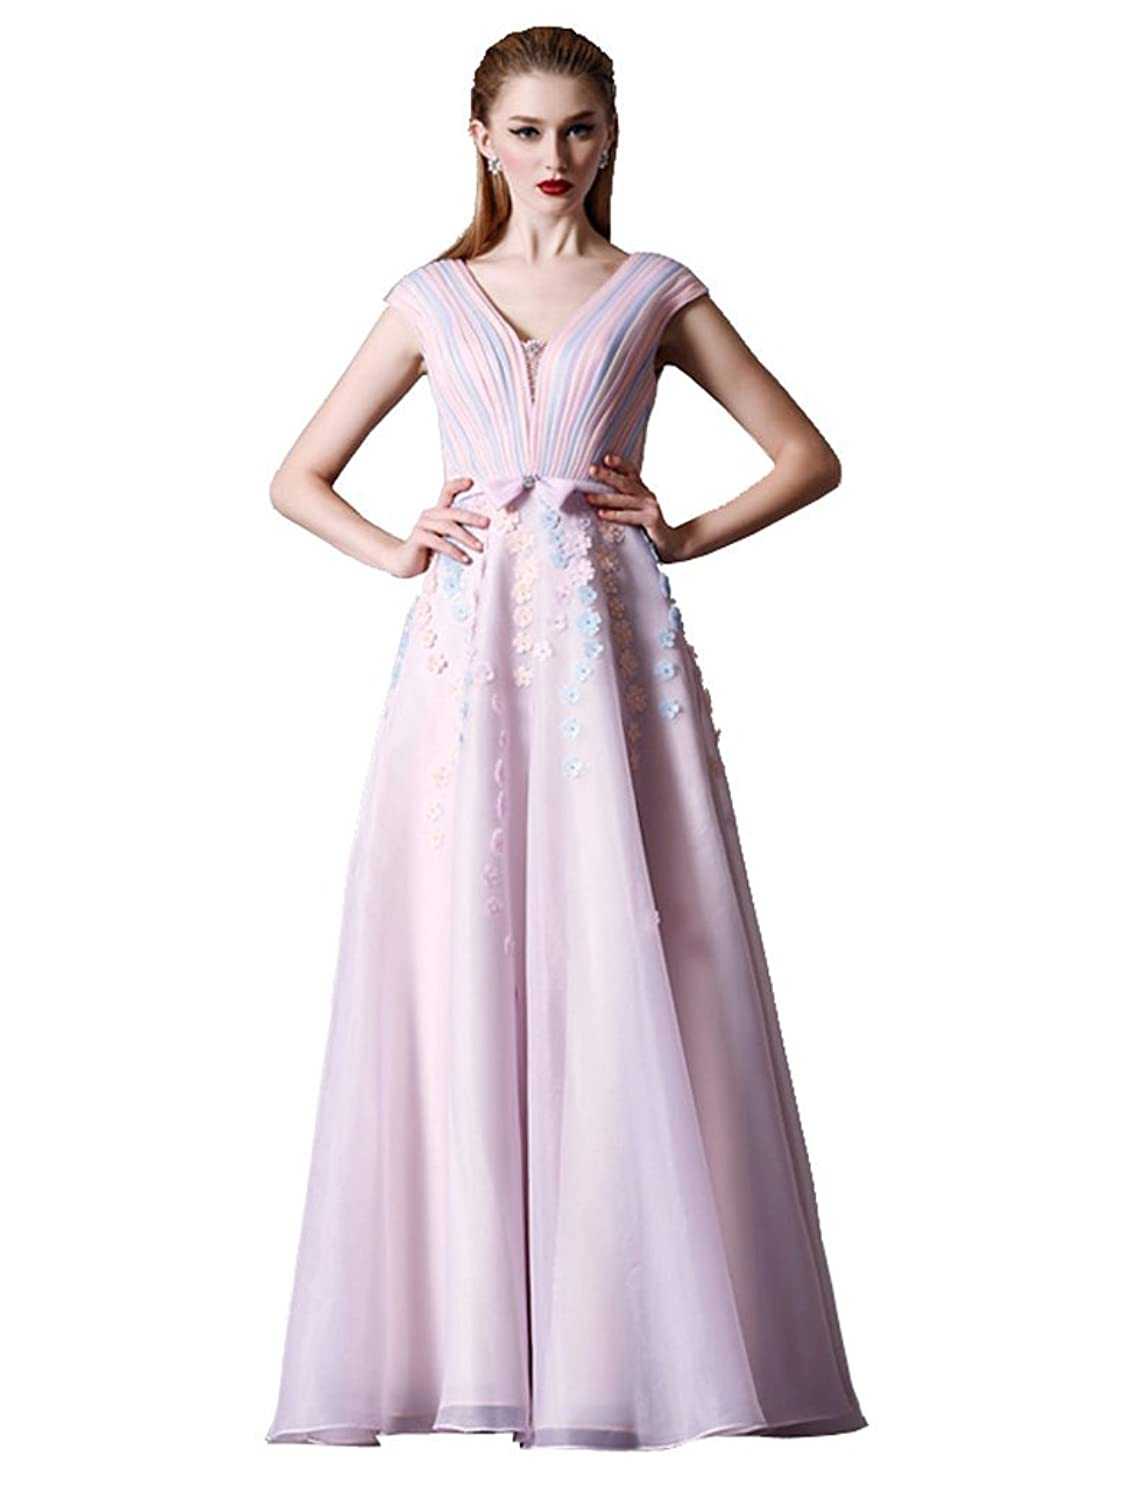 Beauty-Emily Long Bow-Tie A-Line Pleated Cap Sleeve Double V-Neck Evening Gowns